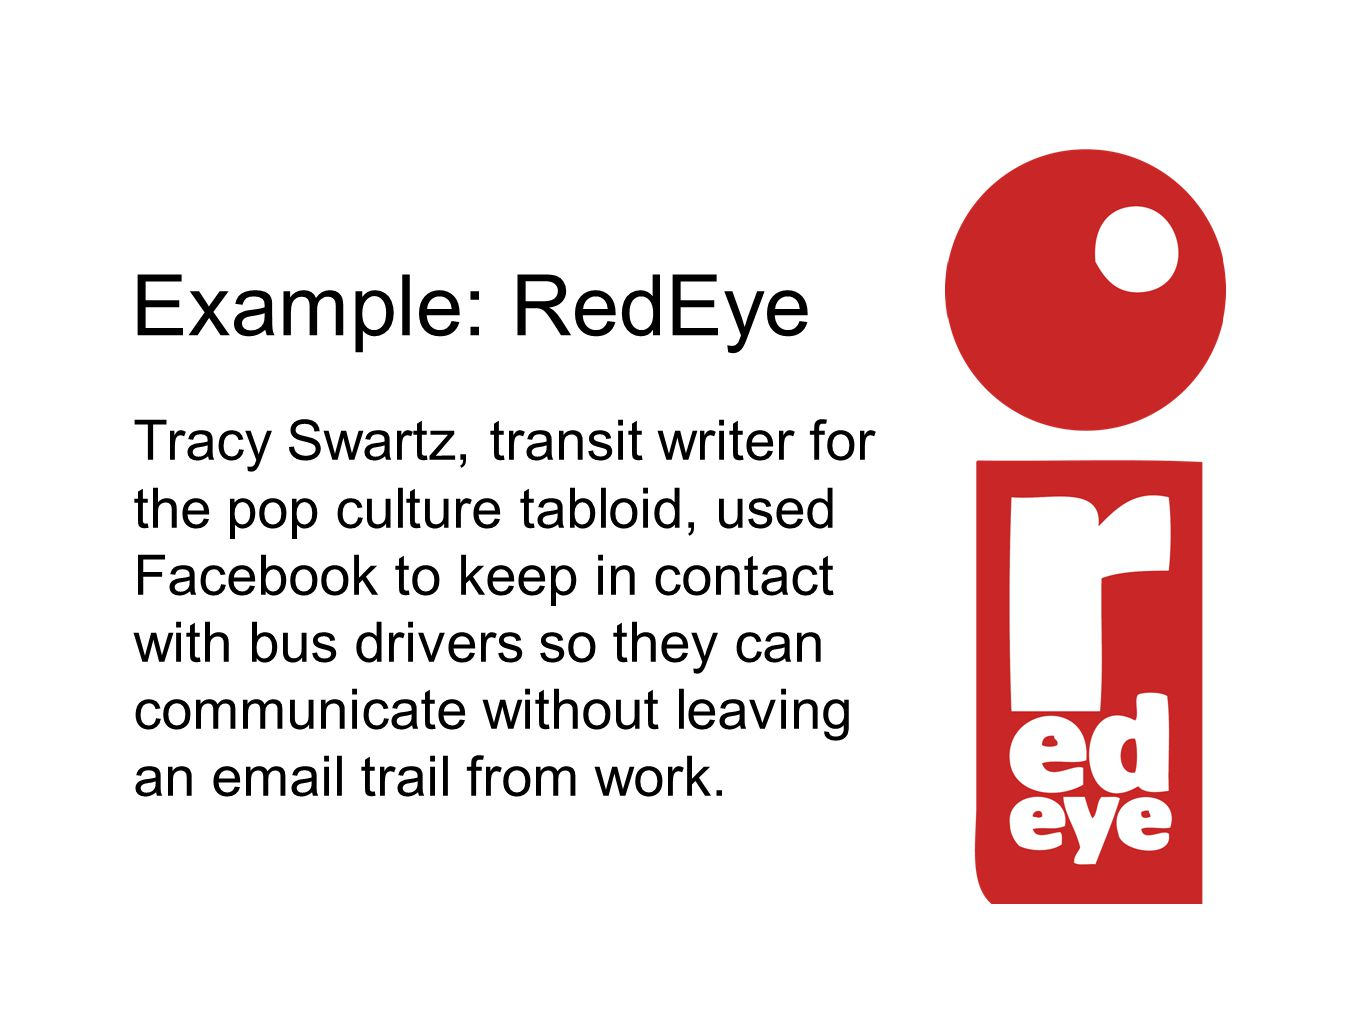 Example: RedEye Tracy Swartz, transit writer for the pop culture tabloid, used Facebook to keep in contact with bus drivers so they can communicate without leaving an email trail from work.